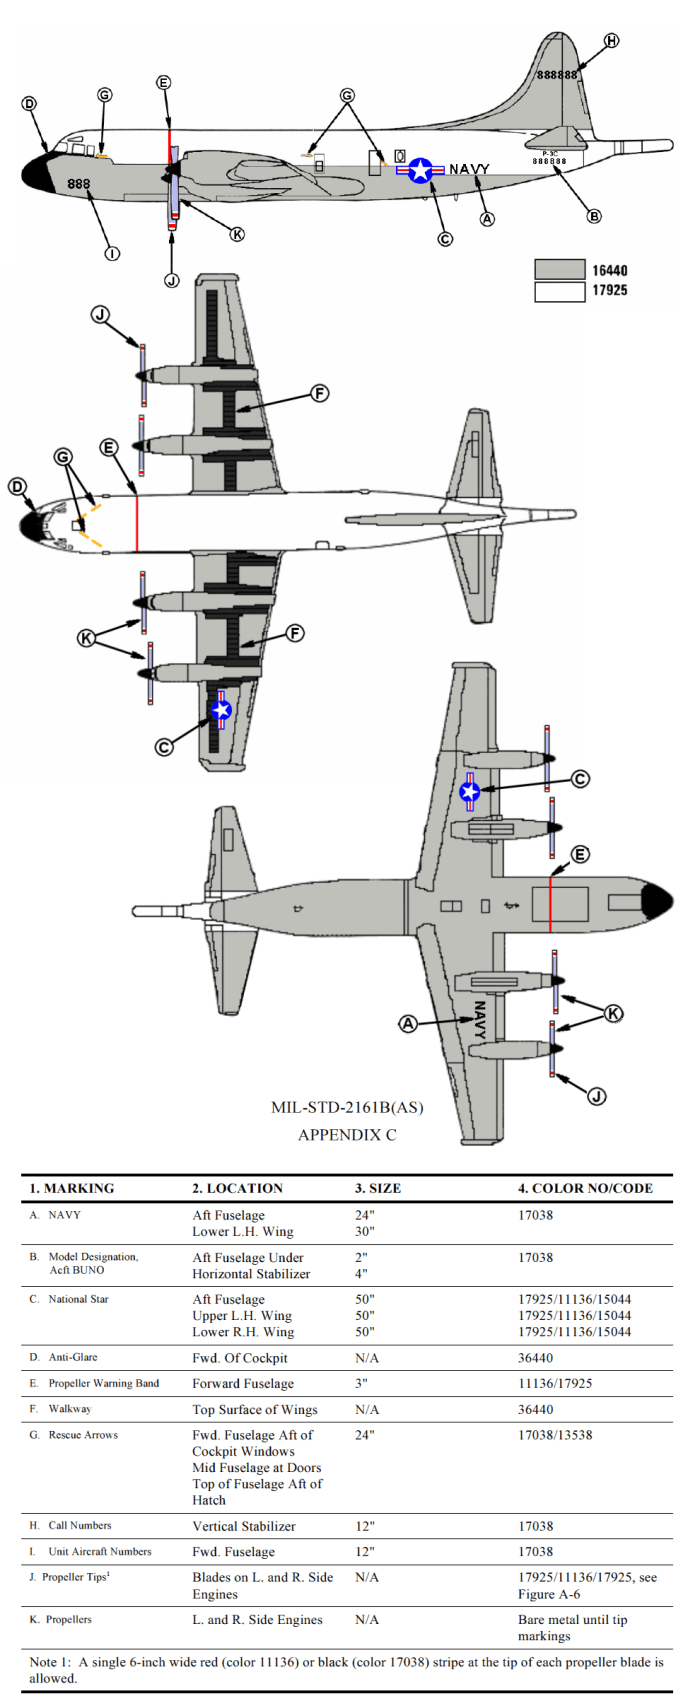 Lockheed P-3 Orion Color Profile and Paint Guide